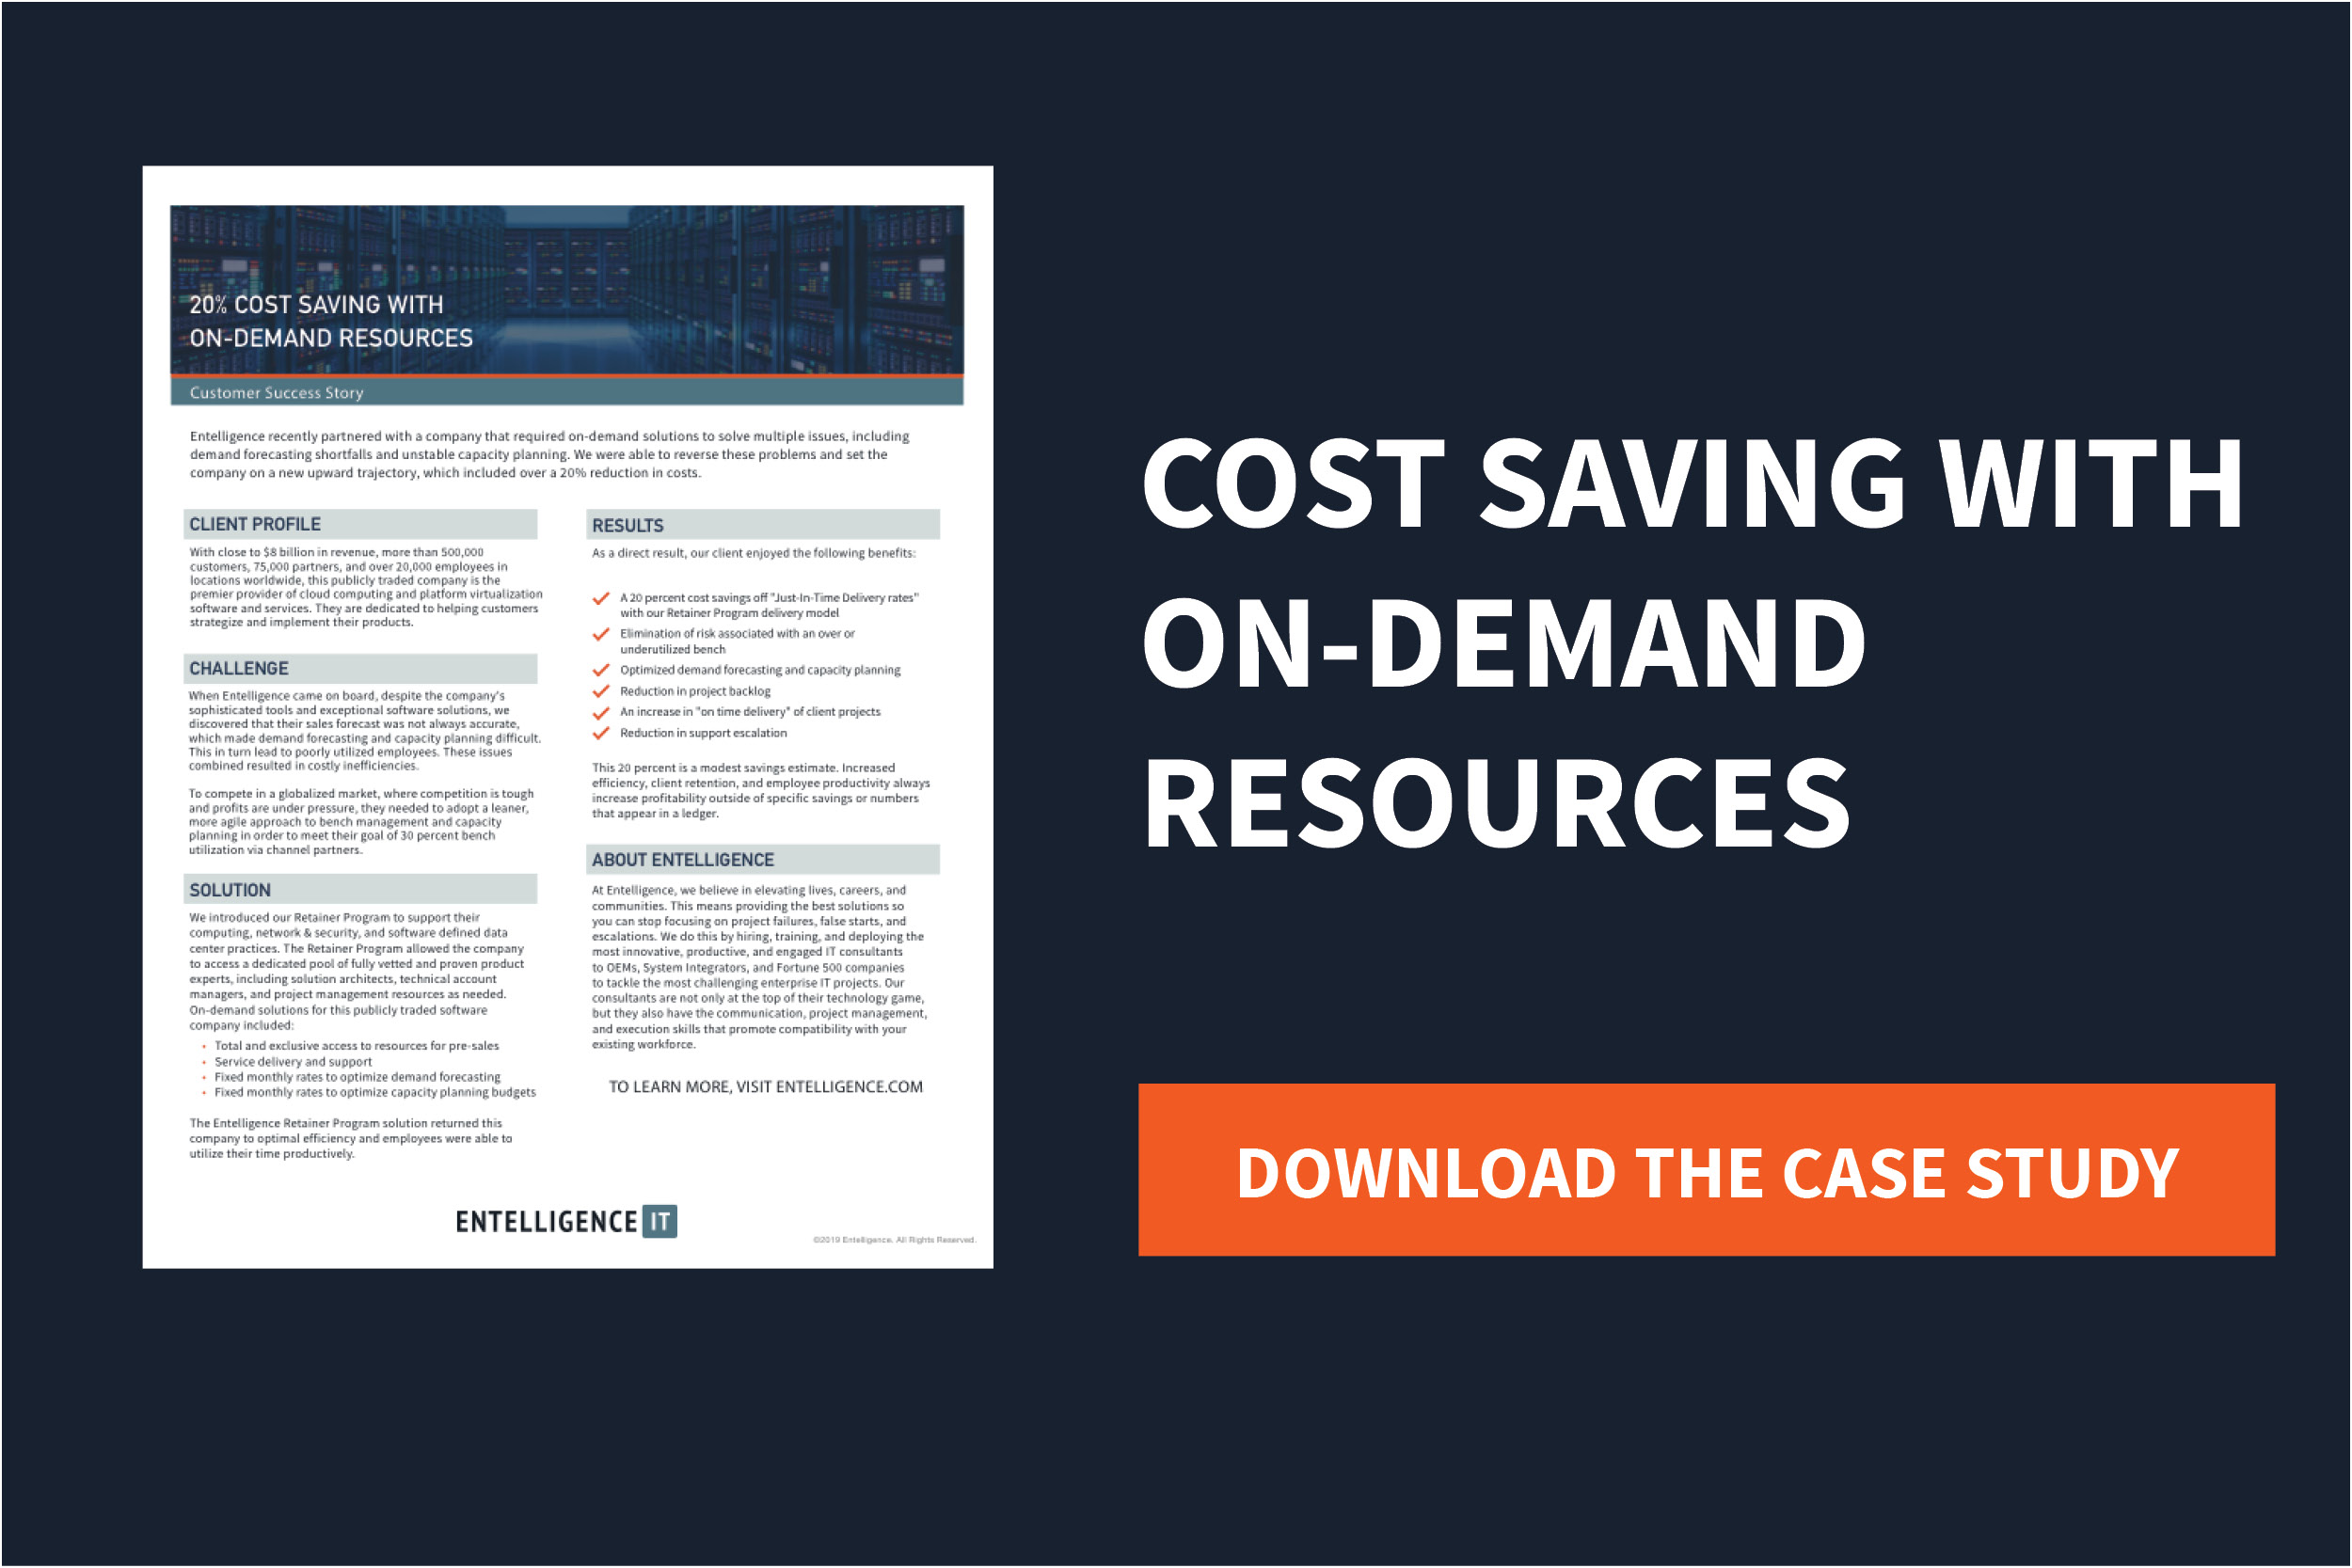 Resources for IT Companies | Entelligence